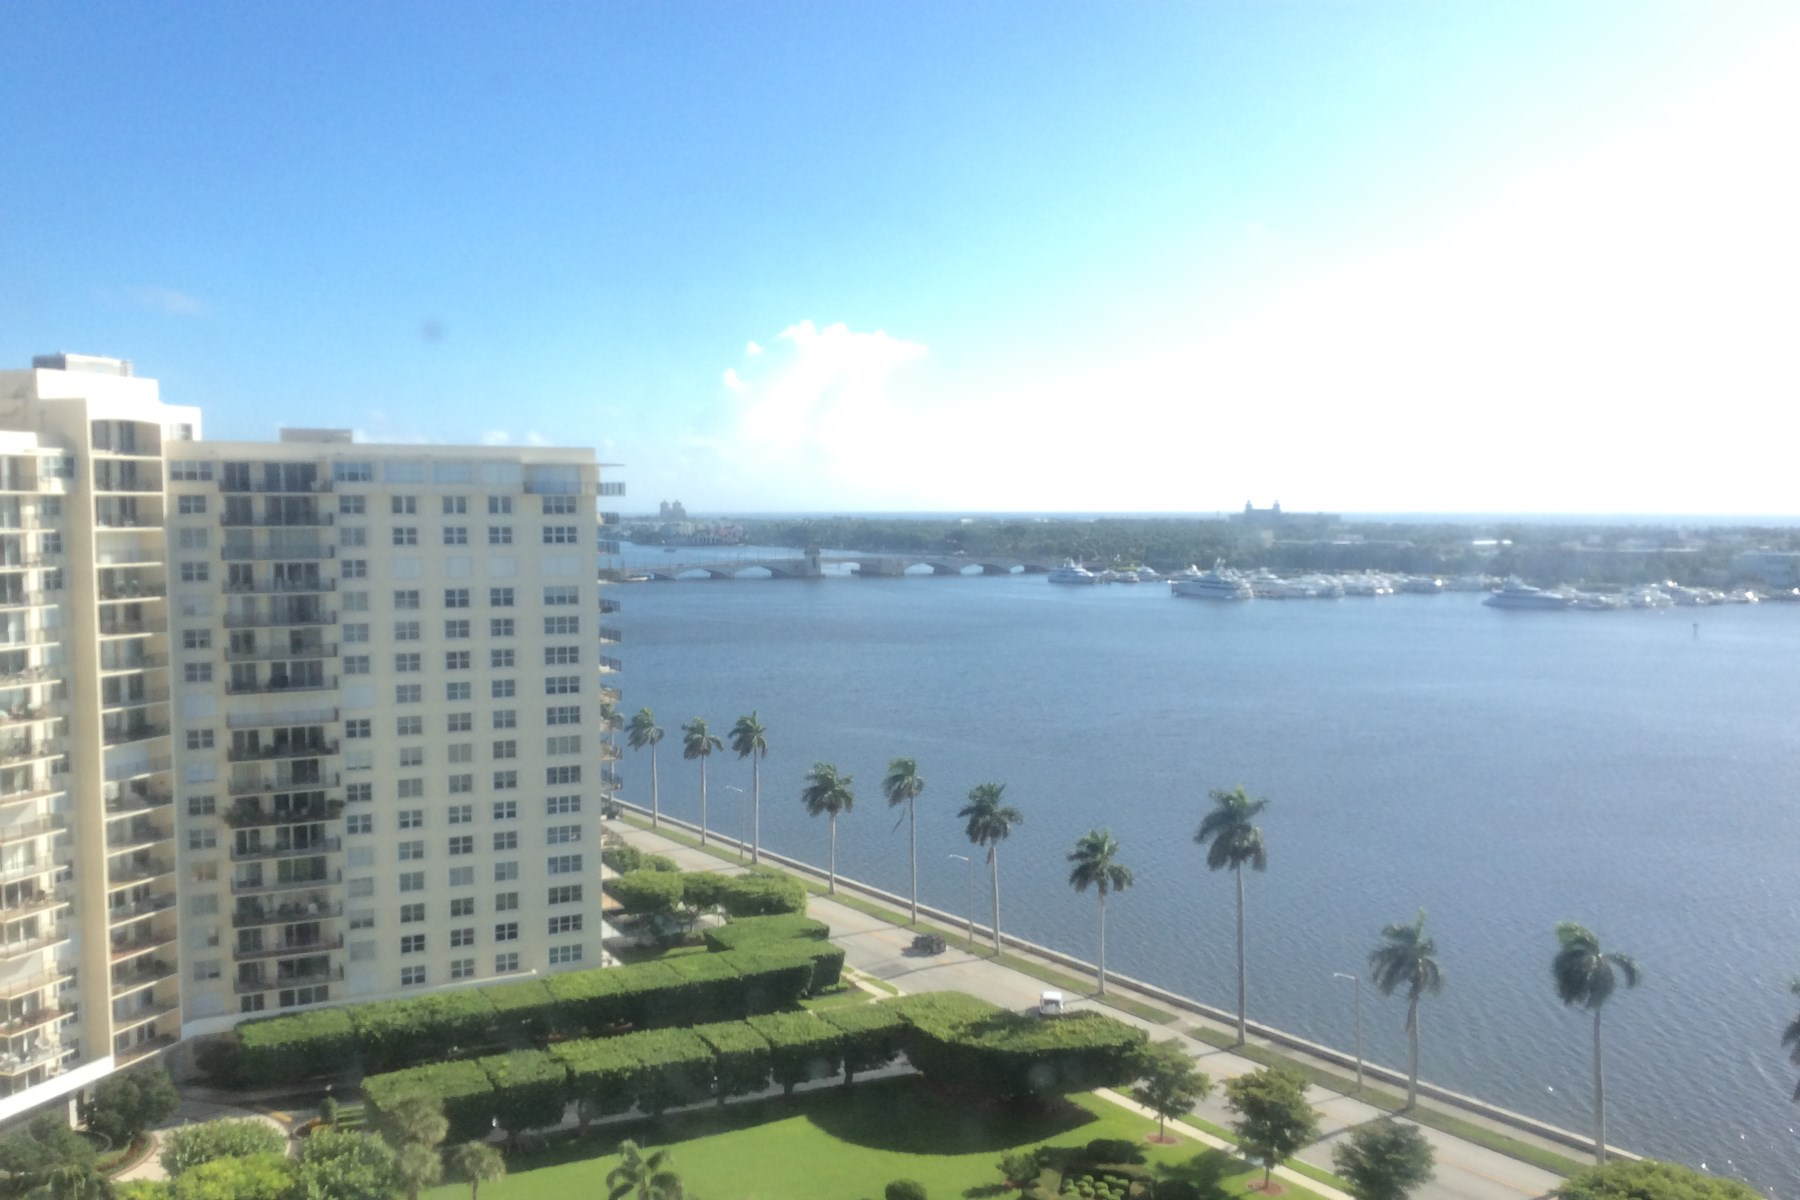 Condomínio para Venda às Fabulous Ocean and Intracoastal Views 1801 S Flagler Dr Apt 1807 West Palm Beach, Florida 33401 Estados Unidos